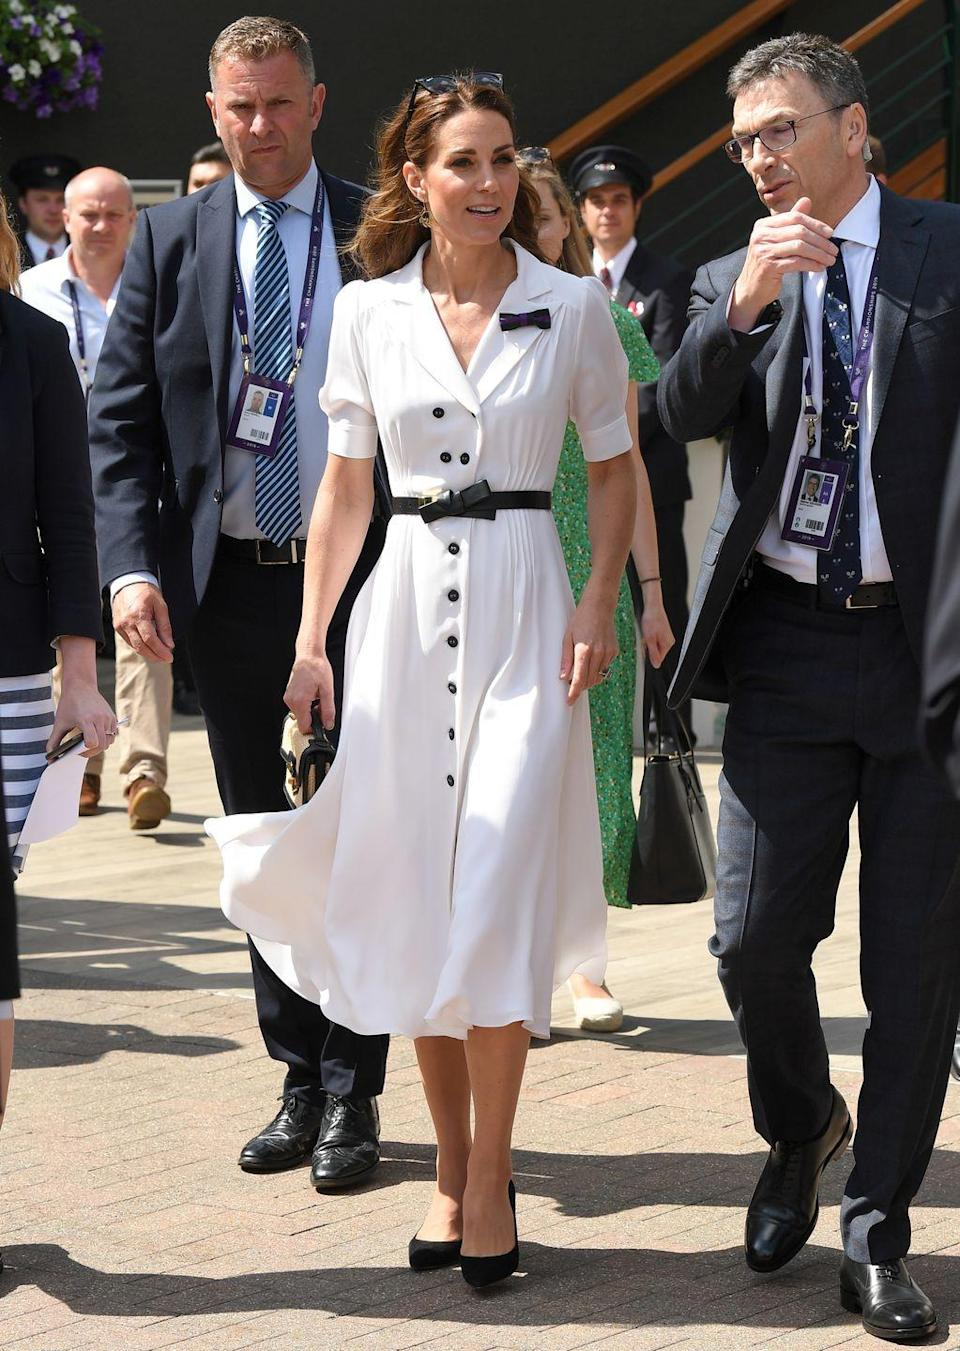 <p>The Duchess of Cambridge arrived at Wimbledon wearing a graphic black and white look.</p>